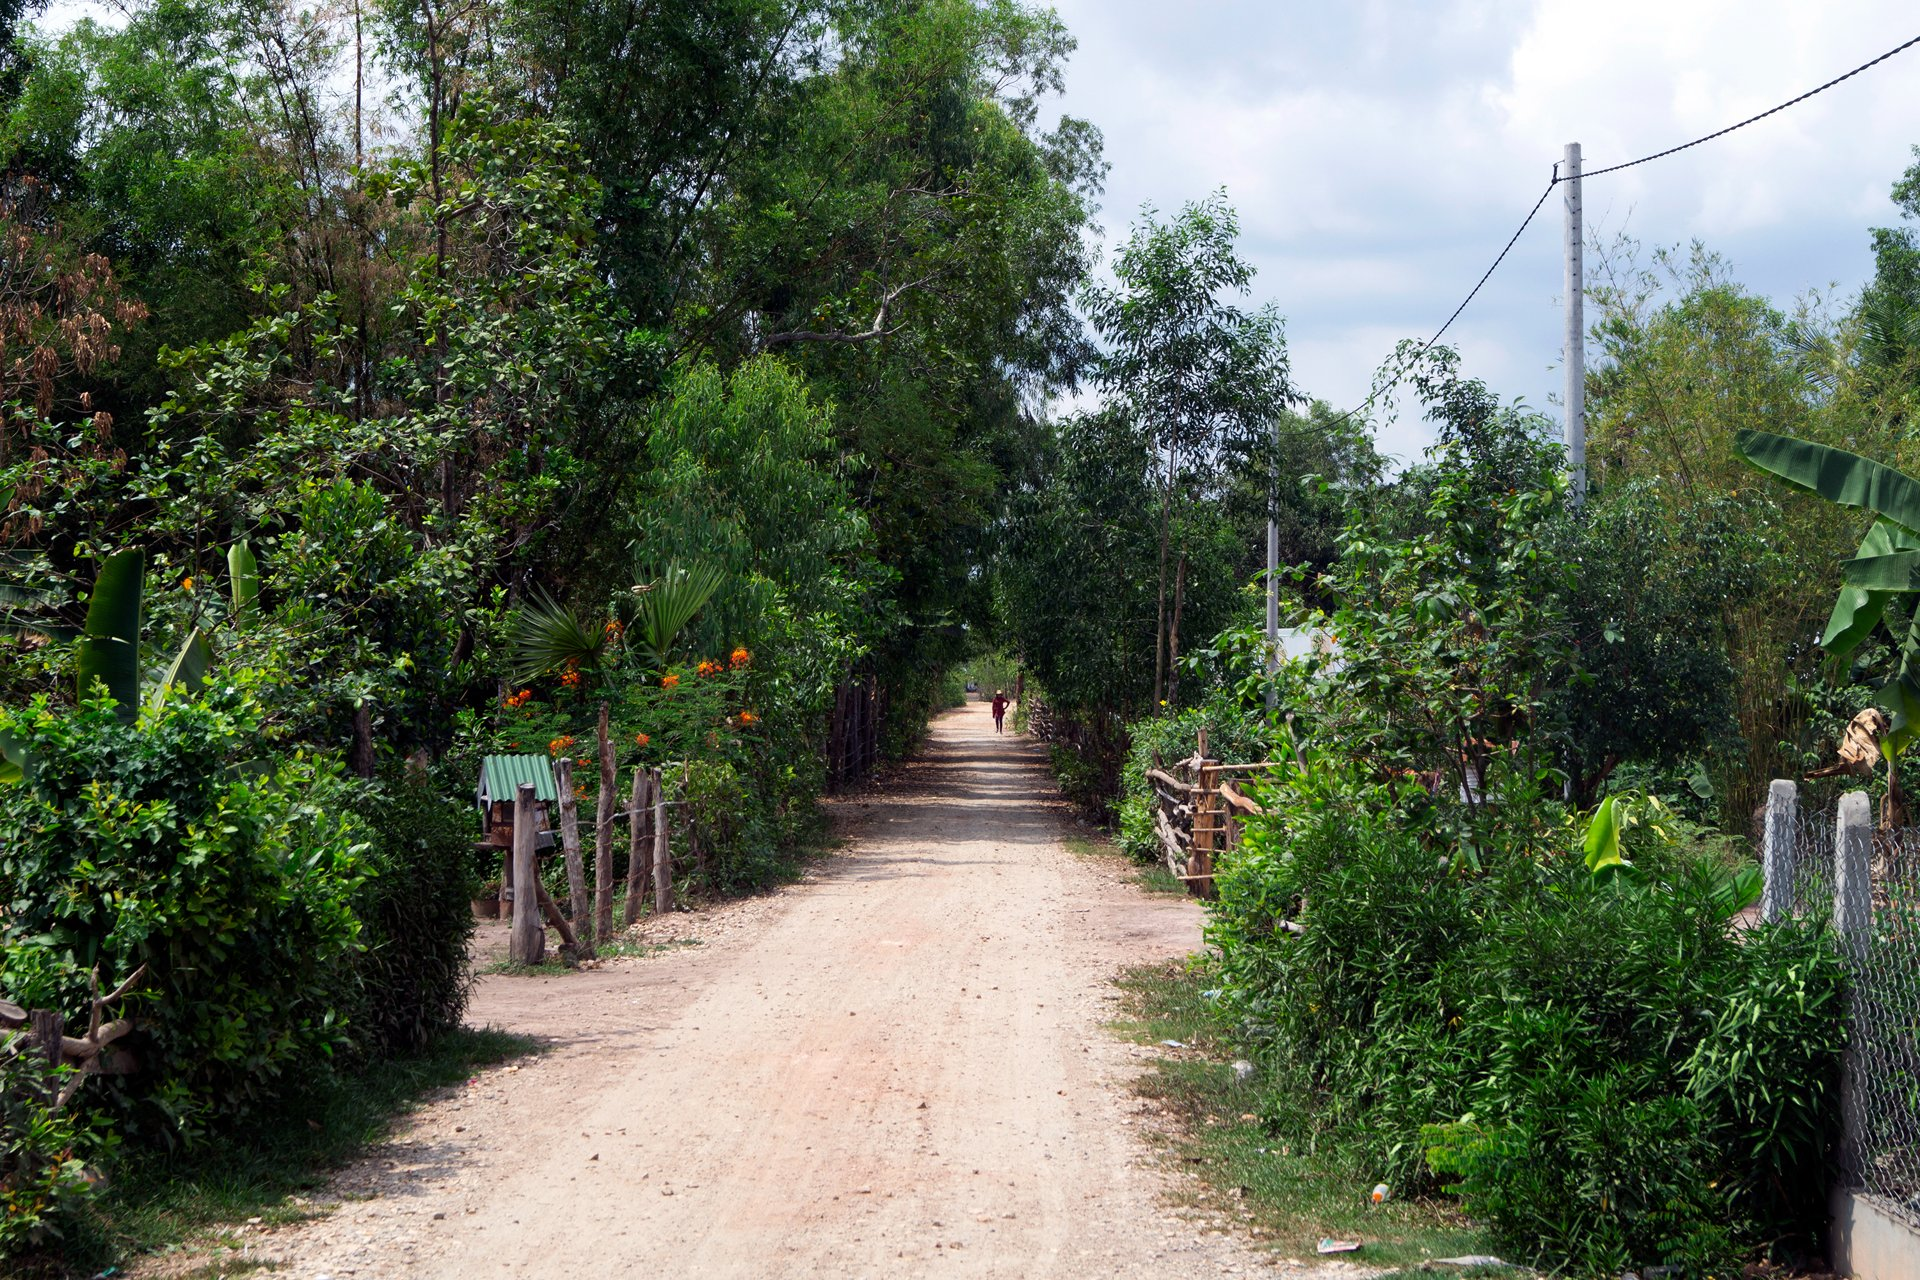 The village of Kampout Tuk, Cambodia.